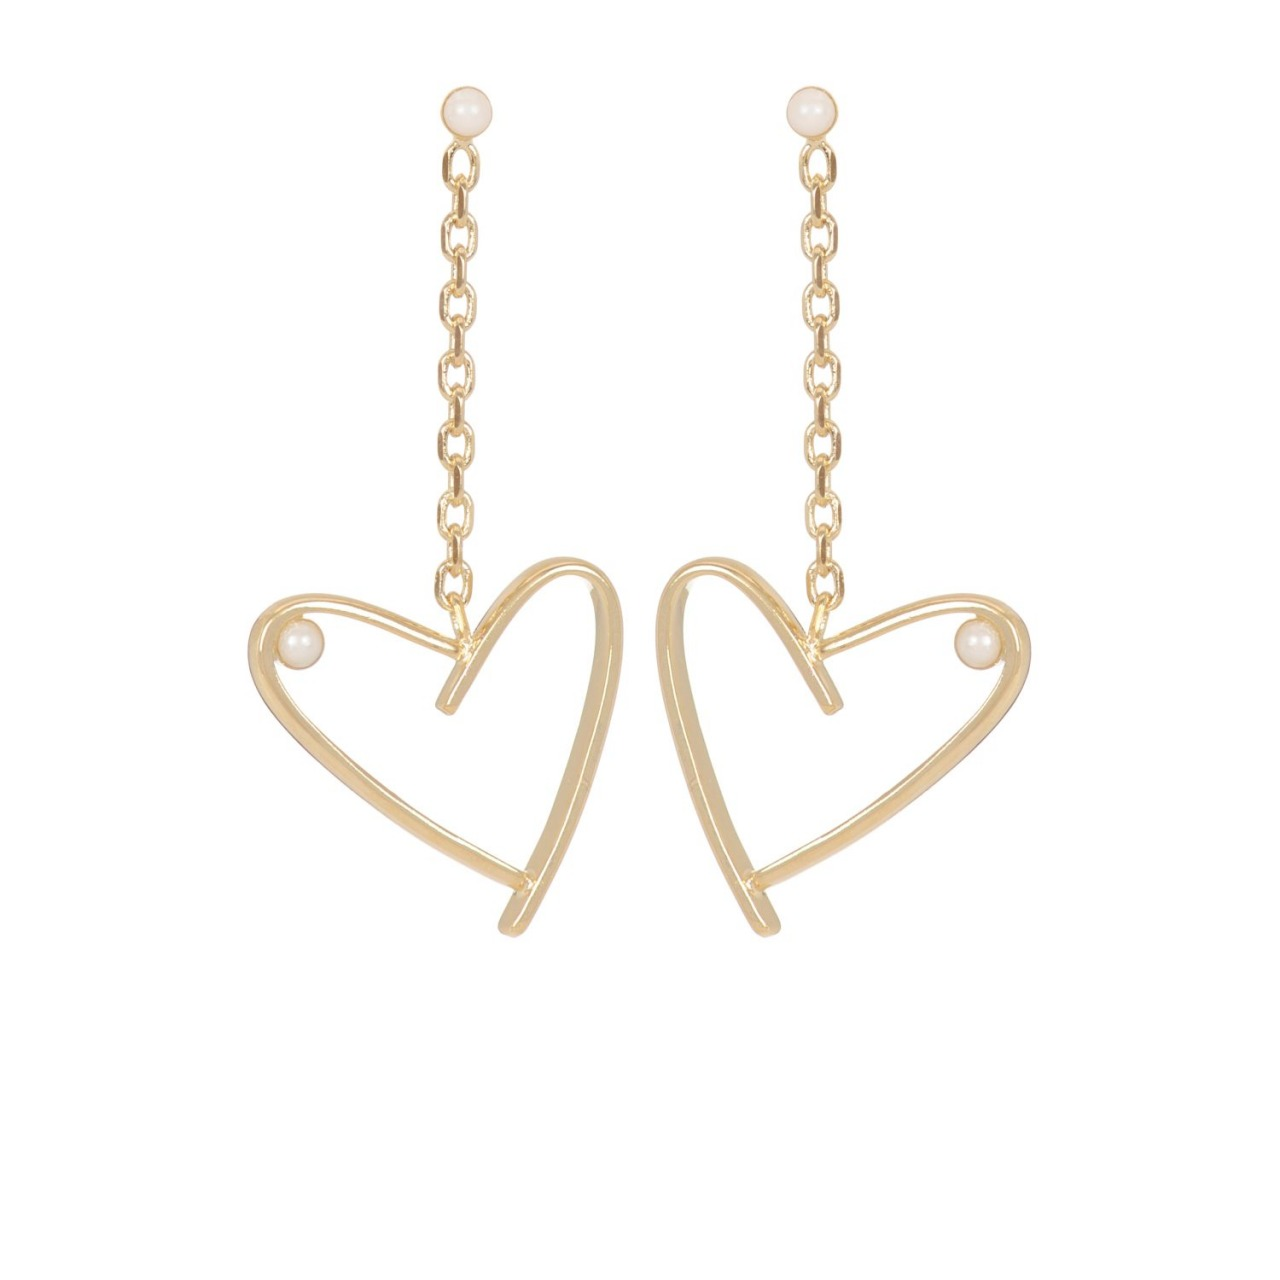 Earrings Amore Chain Gold